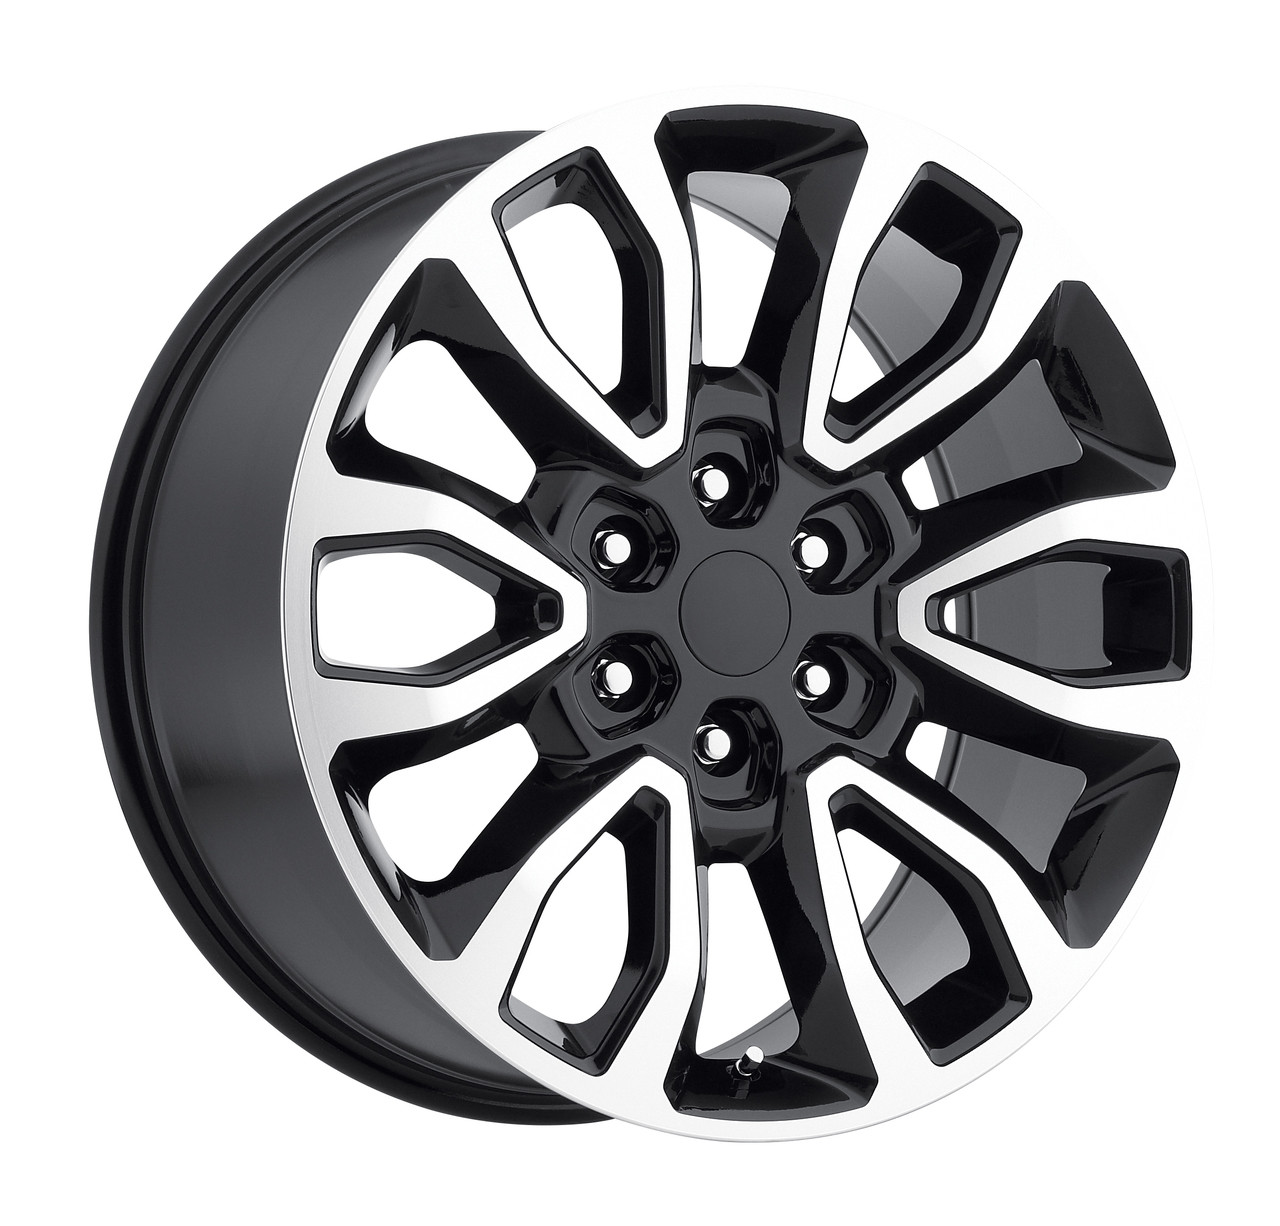 Ford F150 Rims >> 20 Fits Ford F150 6 Lug Wheels Black Machined Face Raptor Style Set Of 4 20x9 Rims